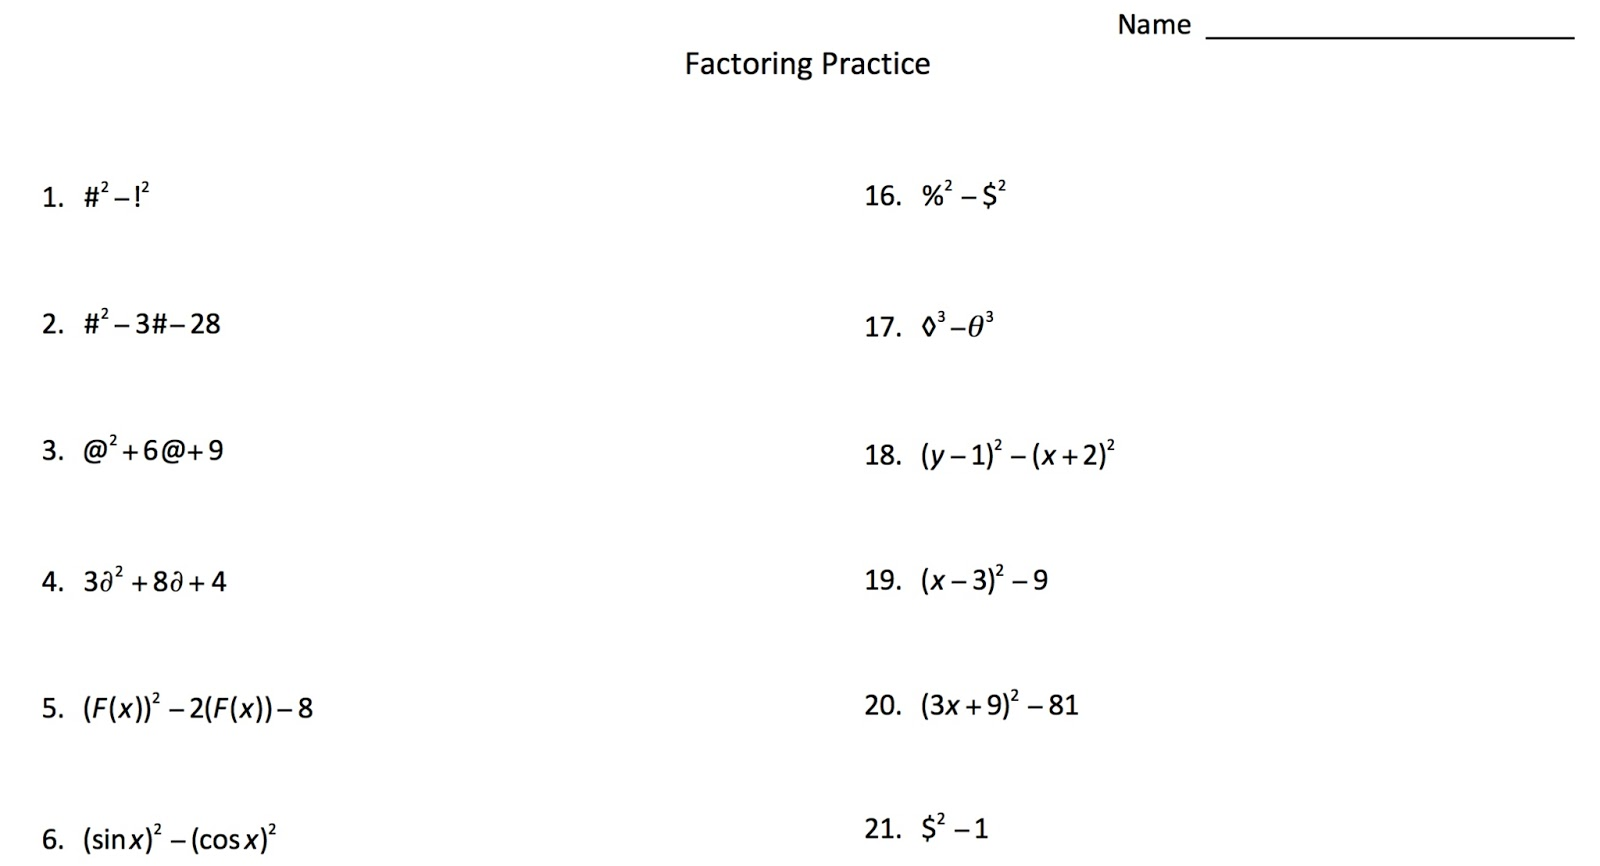 Worksheets Factoring Trinomials Worksheet factoring with symbols mrs e teaches math using instead of numbers to help students see the patterns